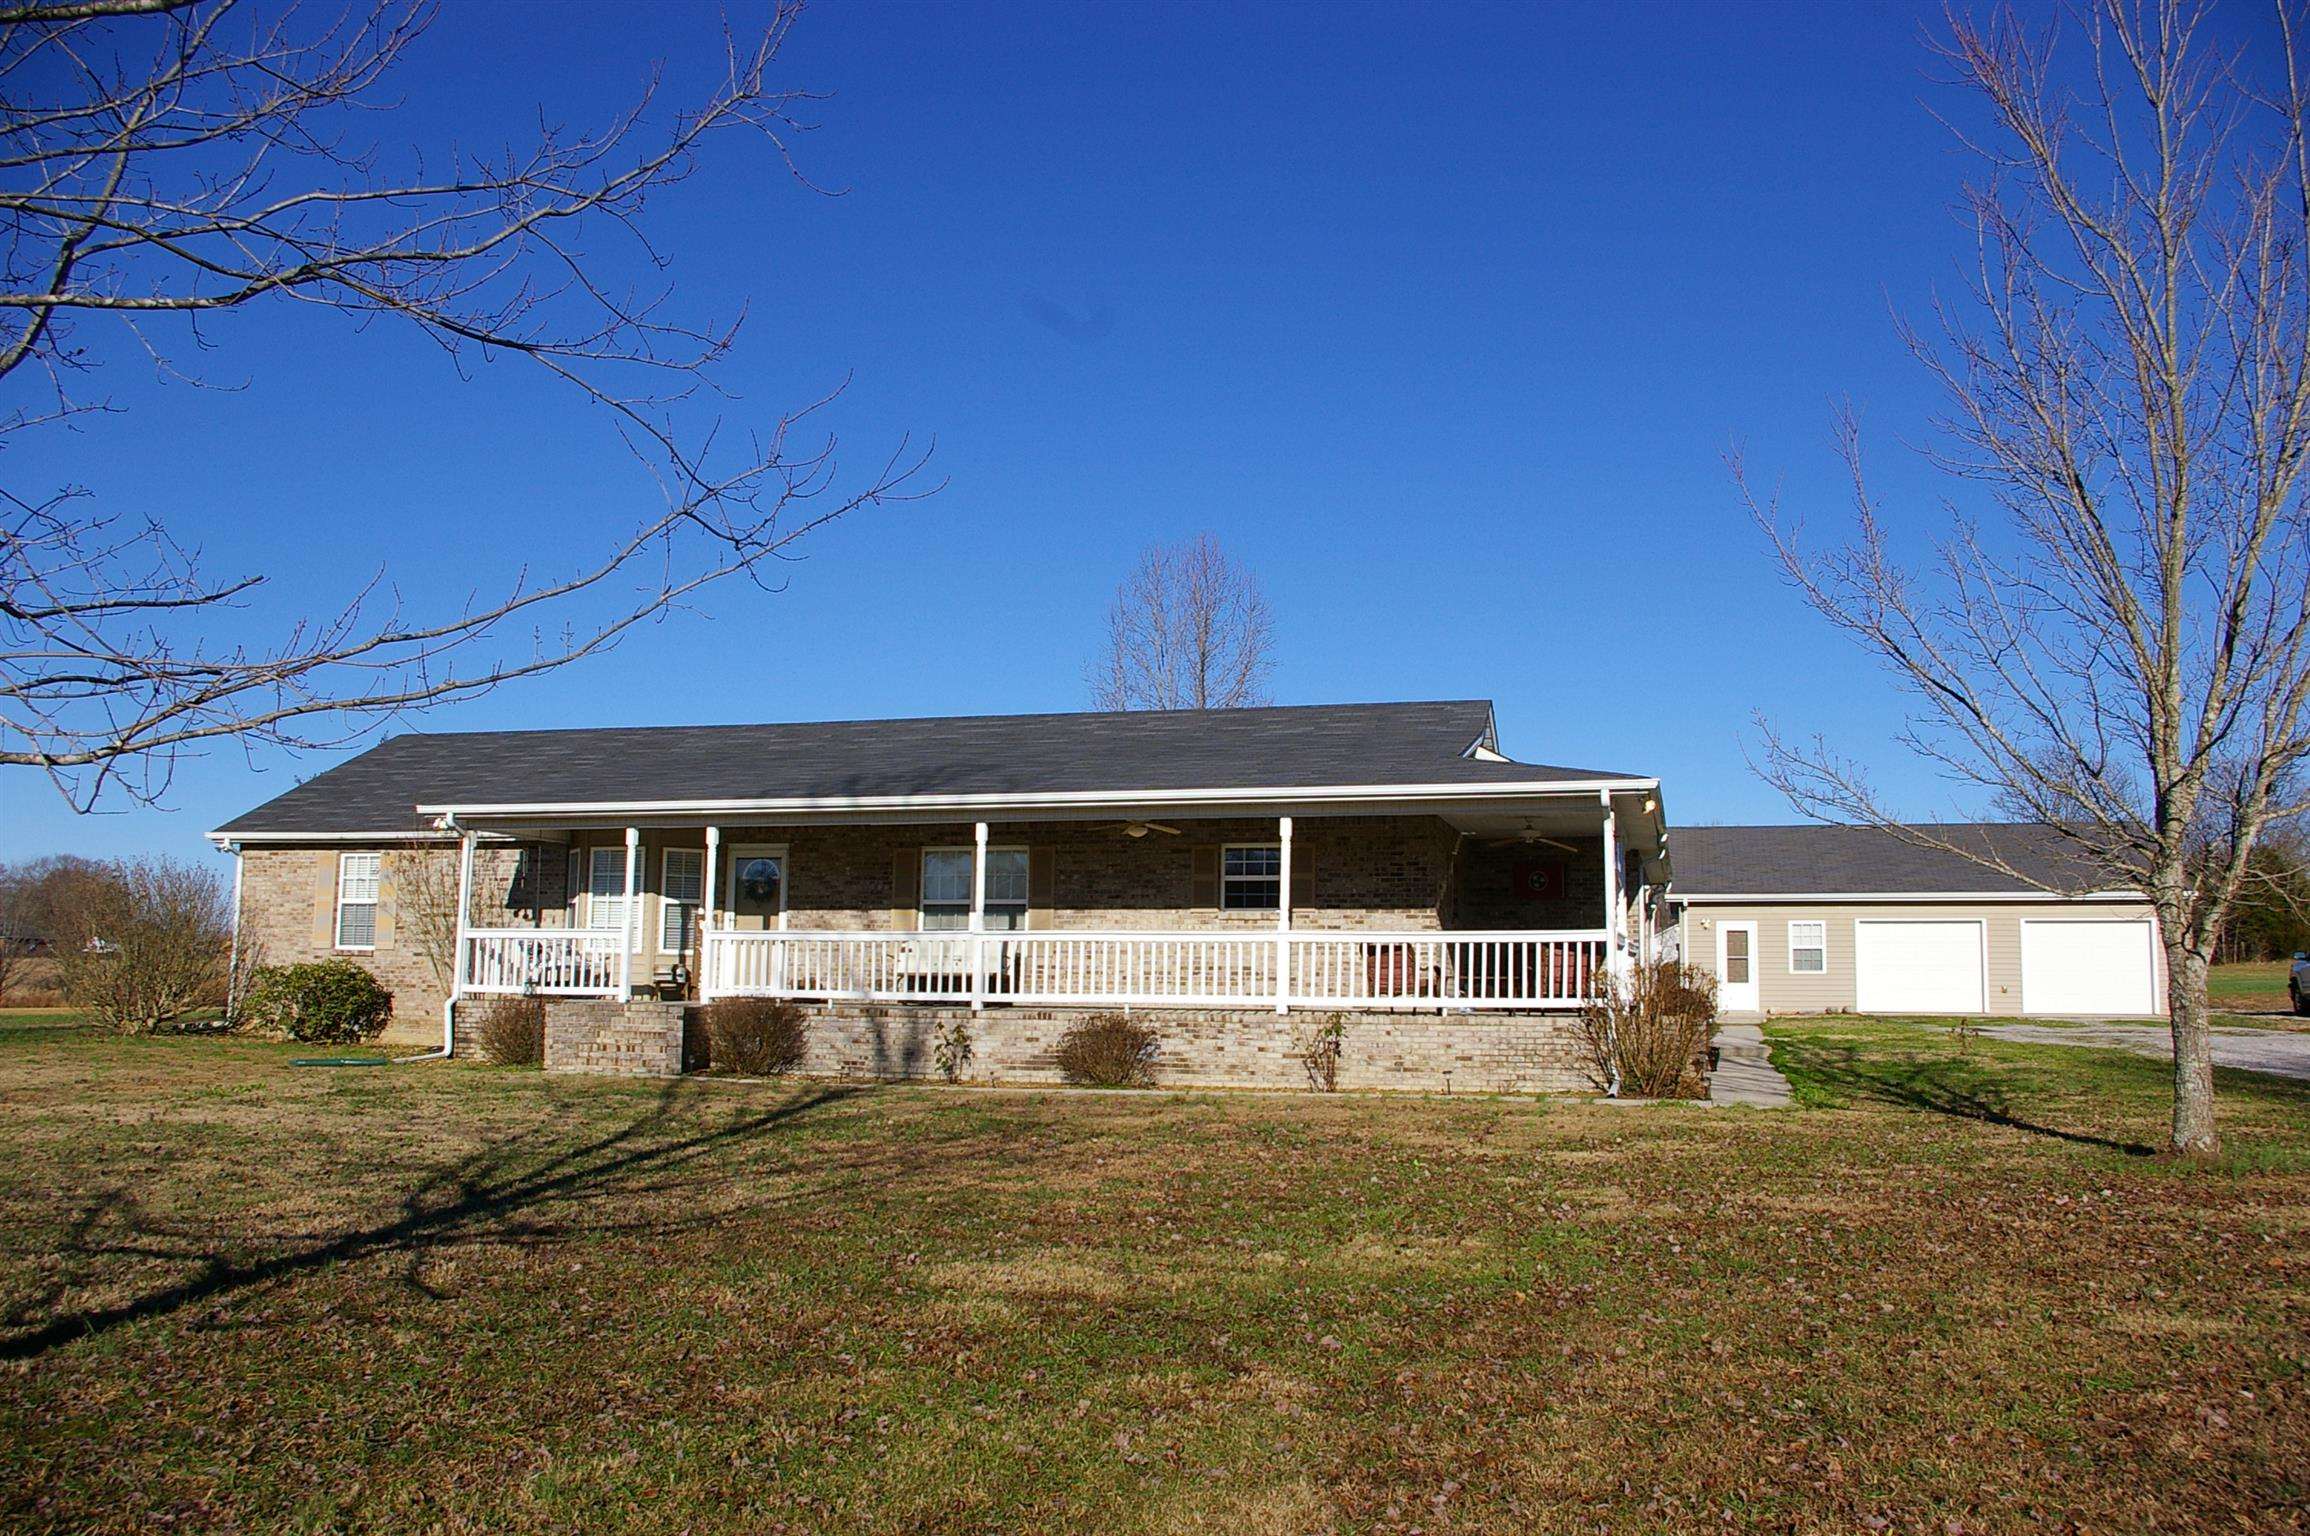 44 Old Pocahontas Rd, Manchester, Tennessee